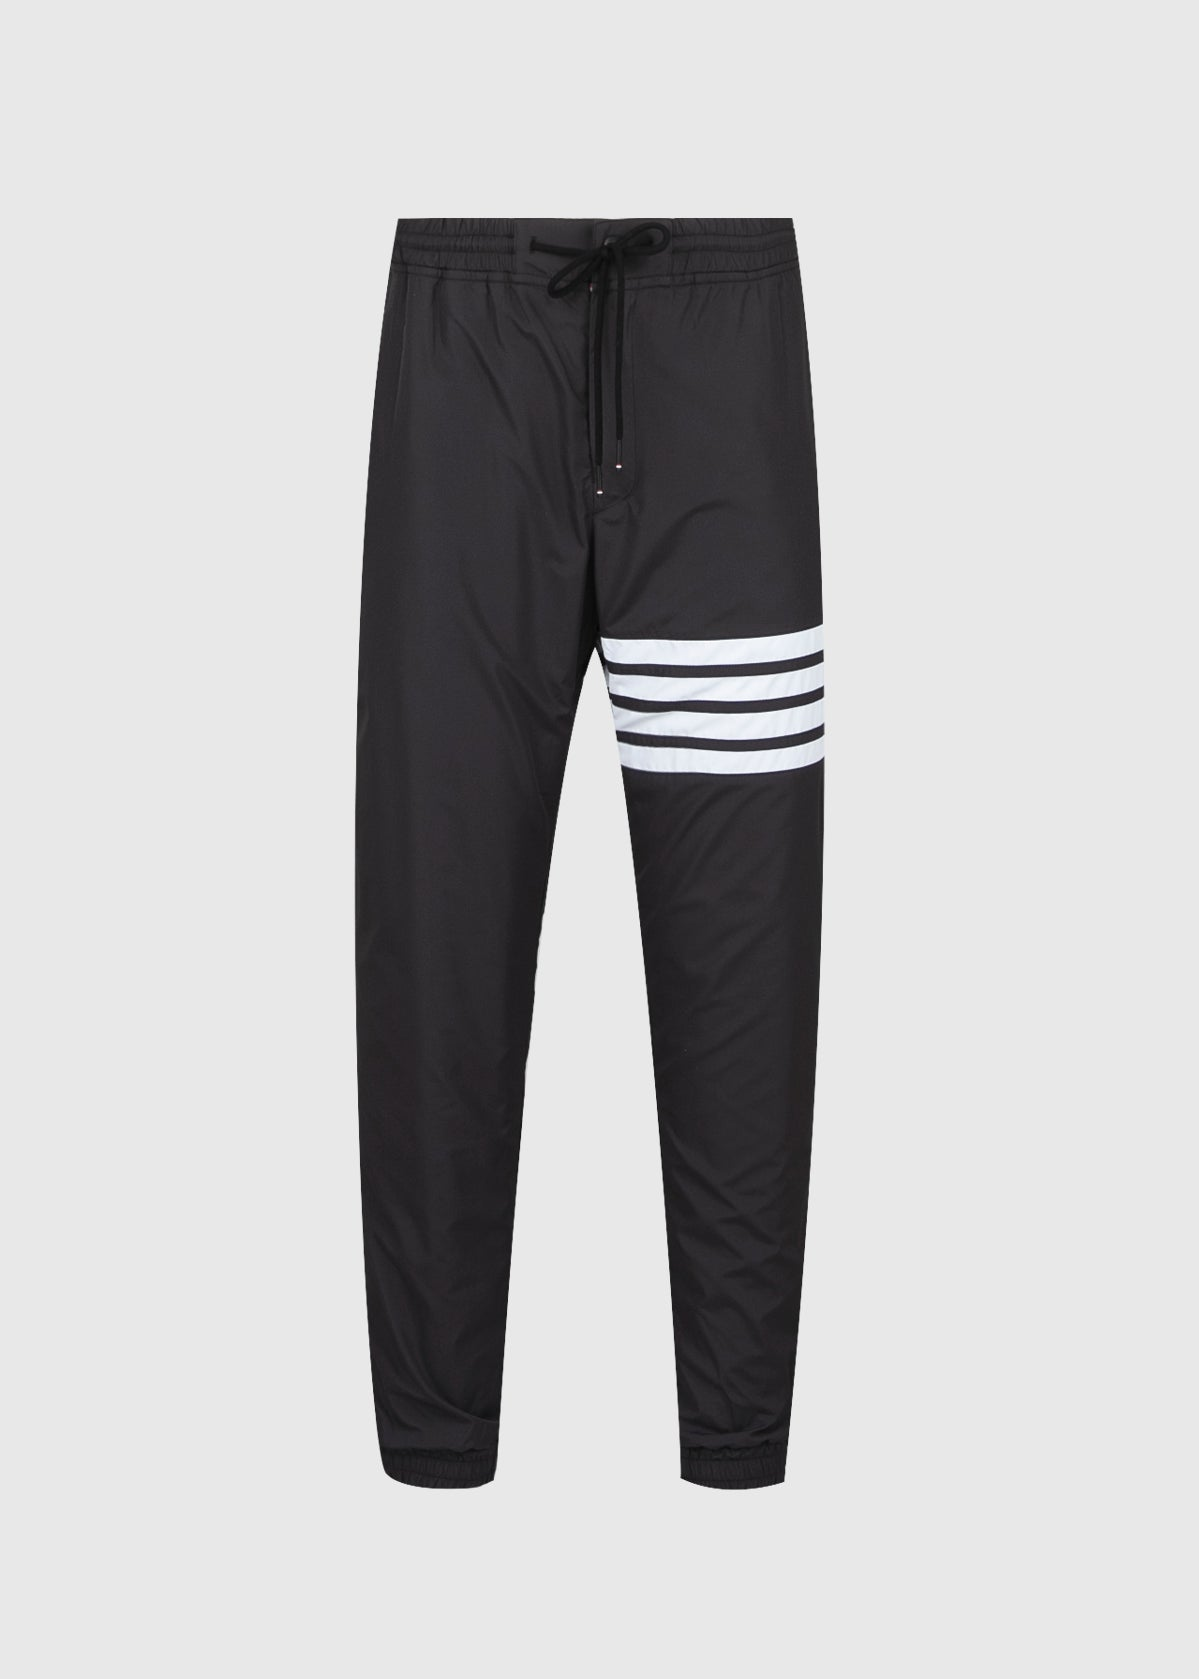 THOM BROWNE: TRACK PANTS